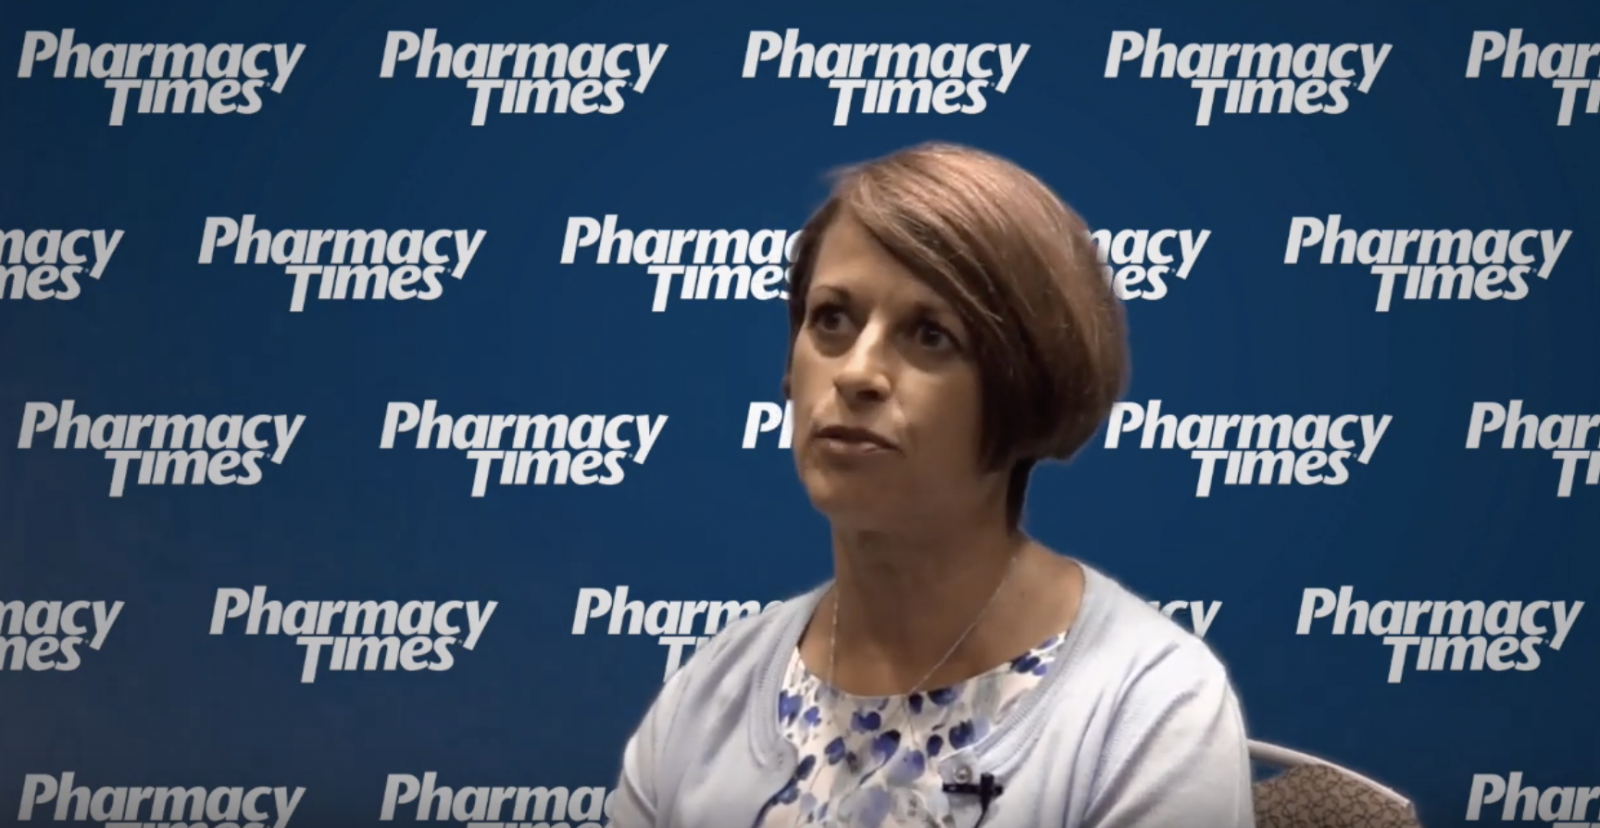 Precision Medicine for Practicing Pharmacists